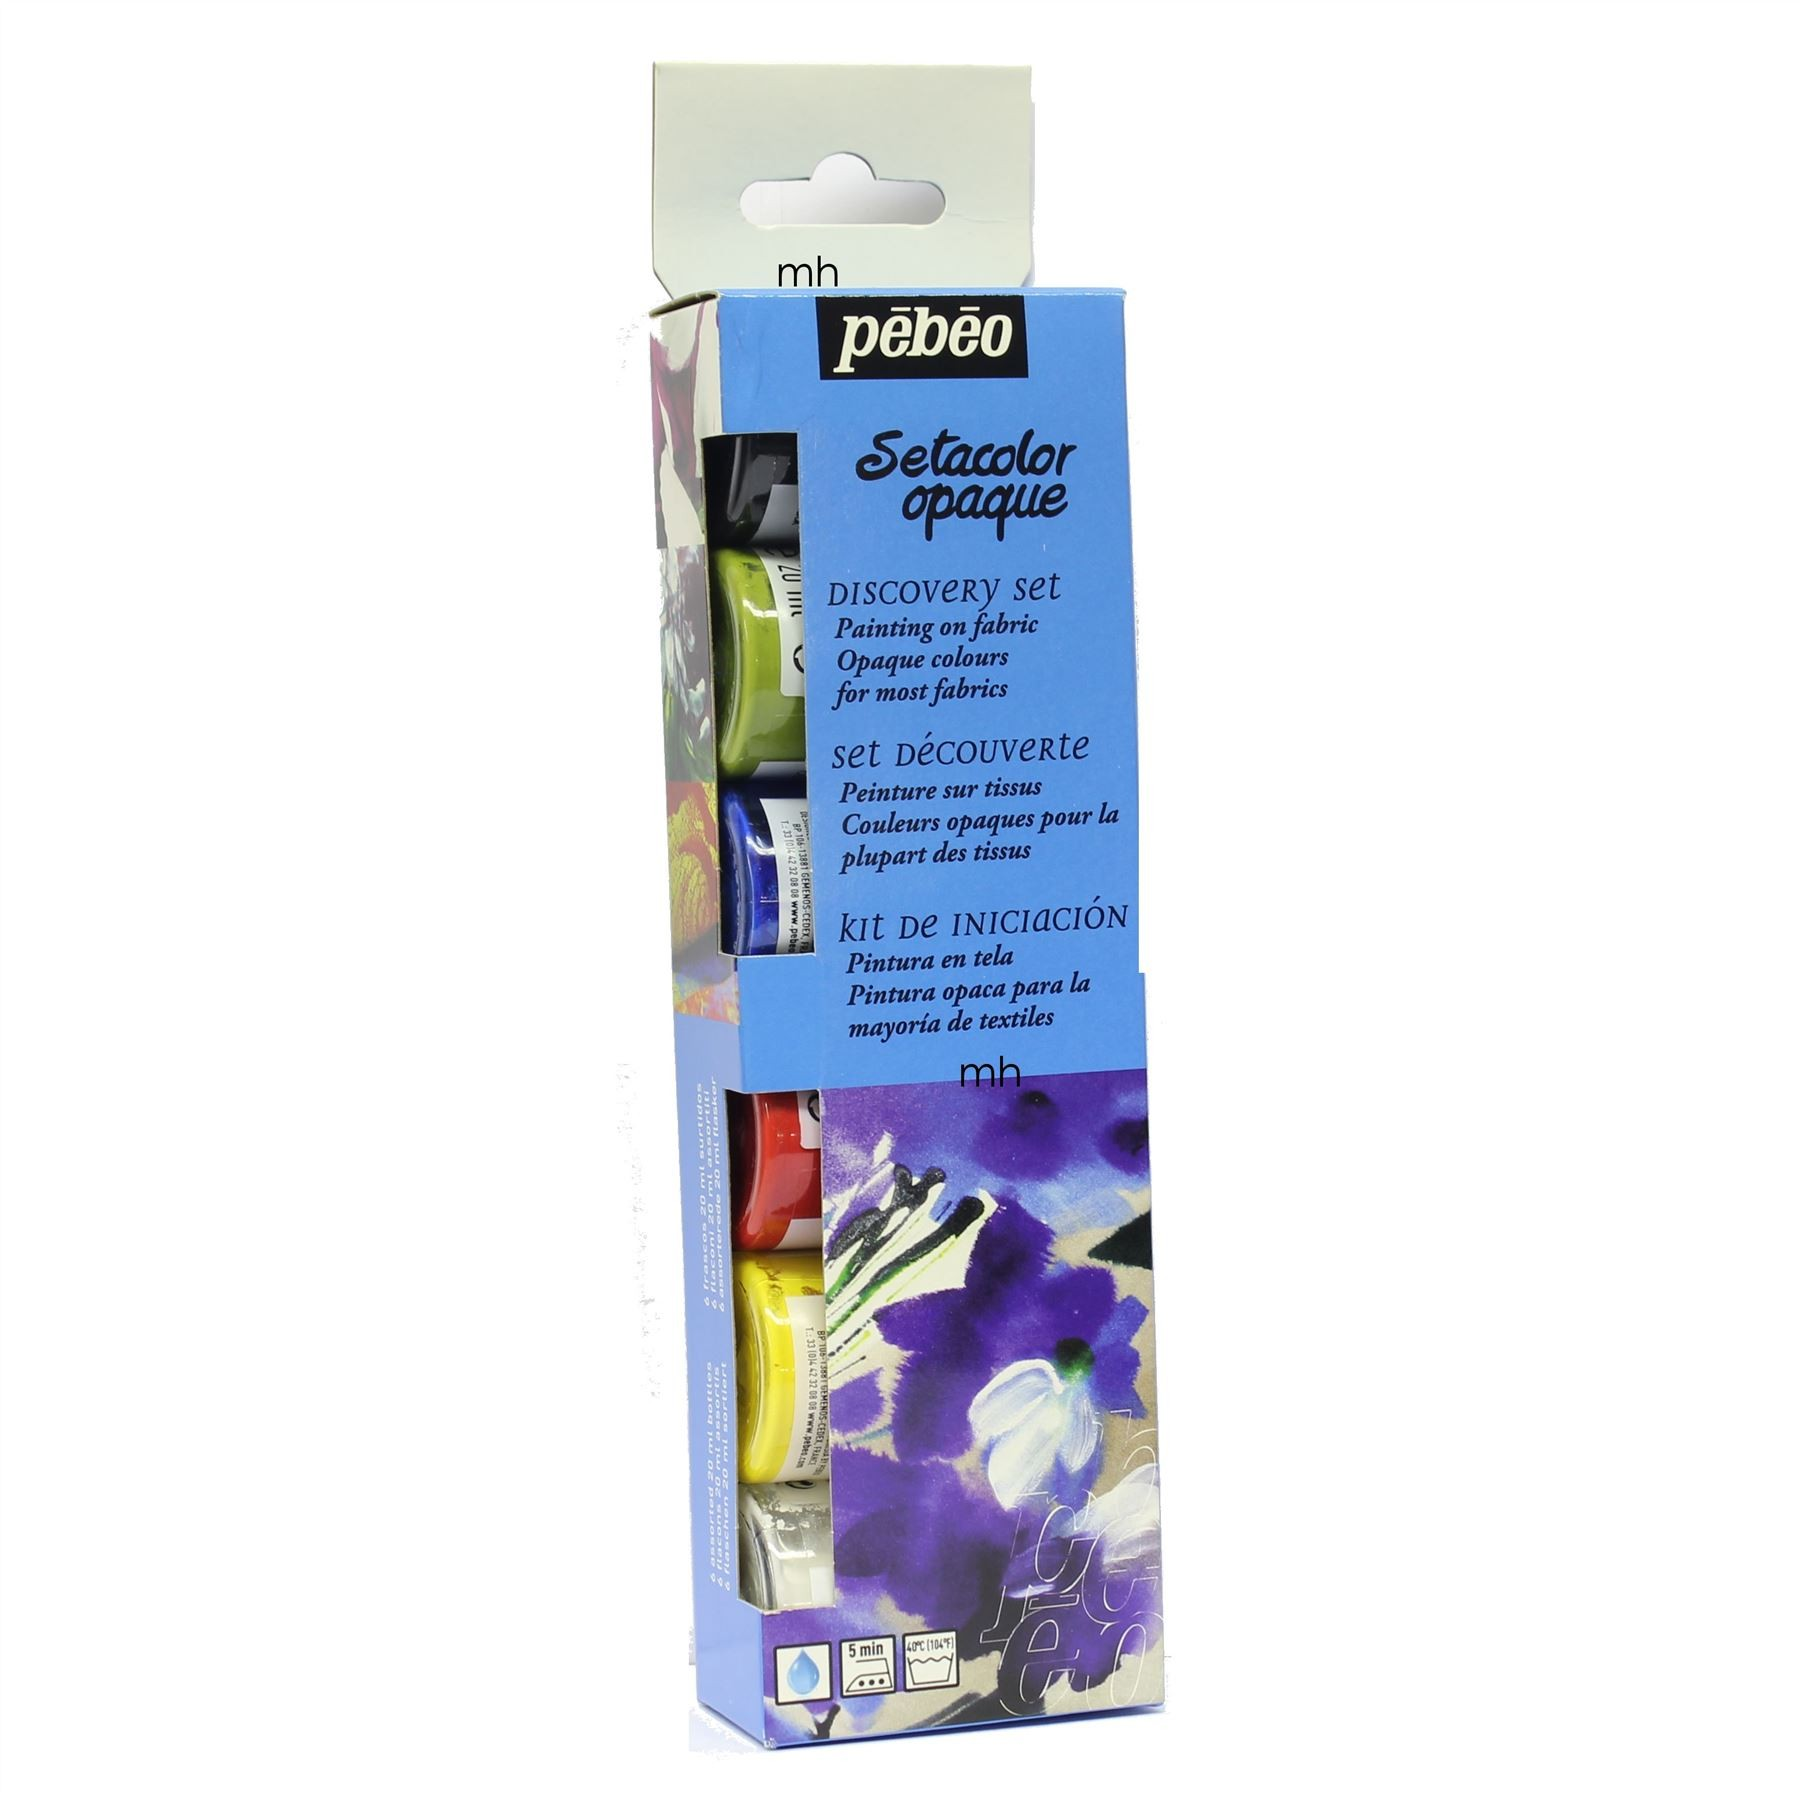 Pebeo Setacolor Opaque Discovery Set Painting on Fabric 6x20ml